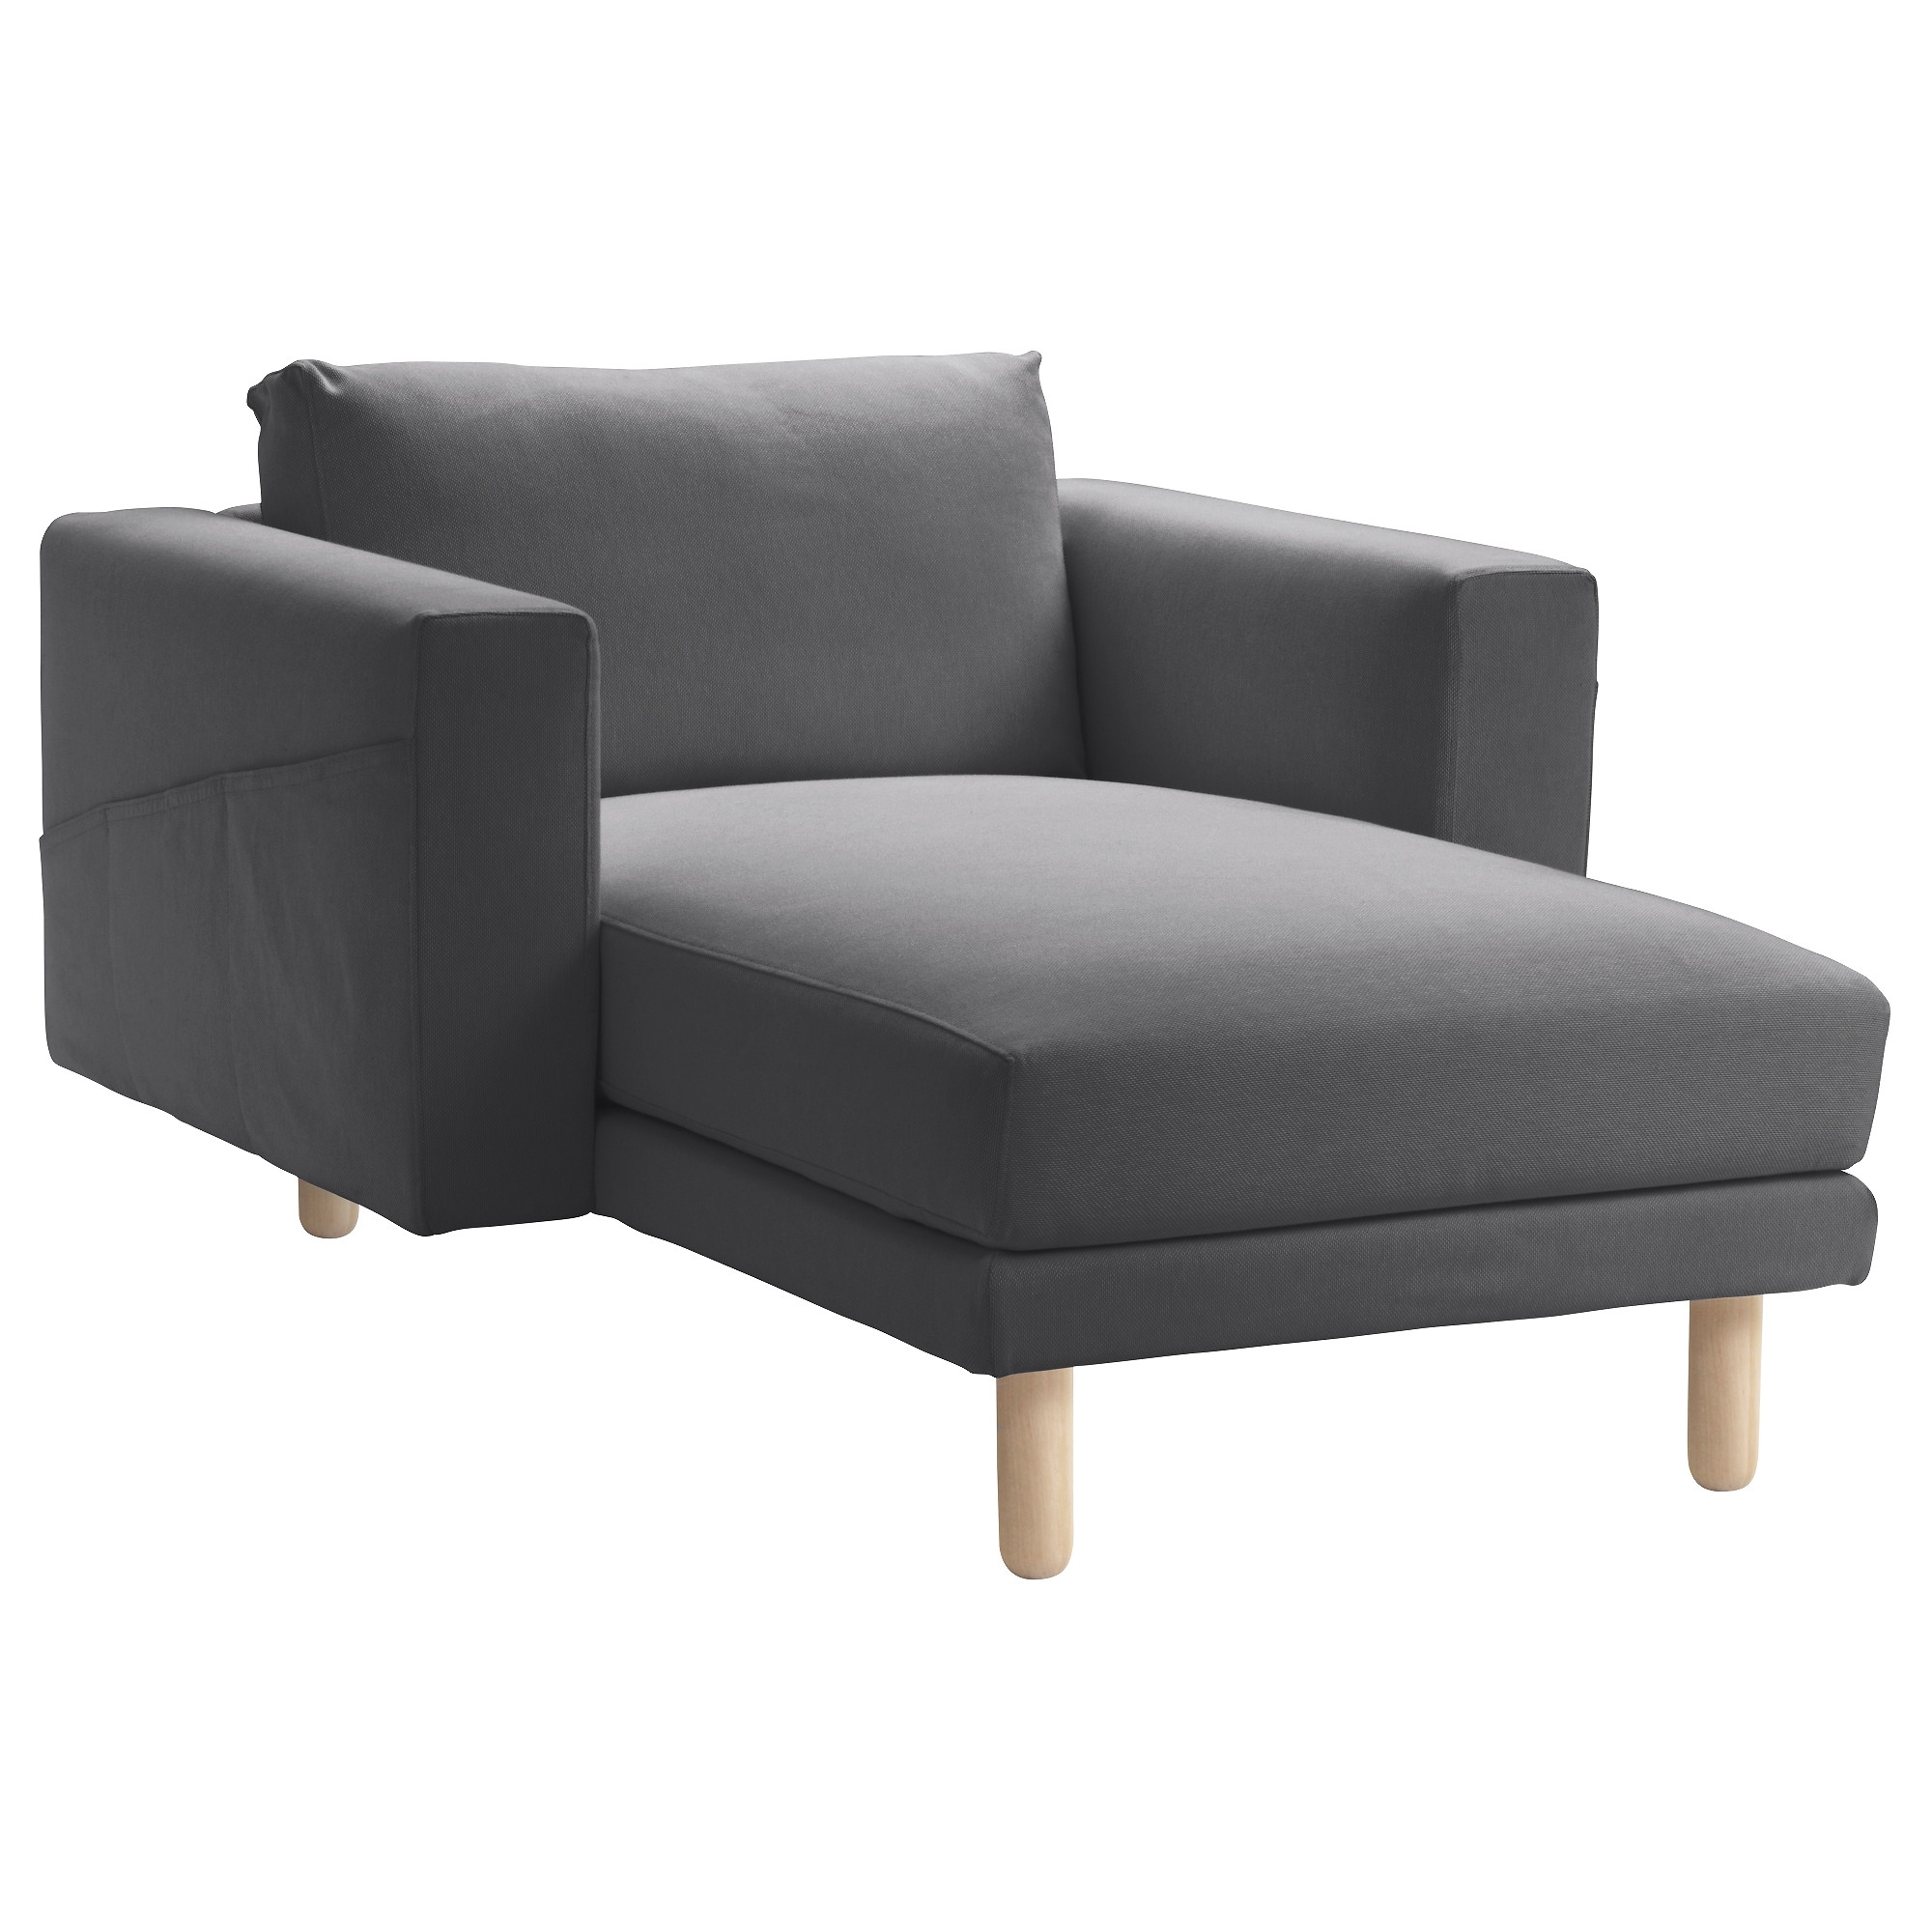 Norsborg Chaise Longue Finnsta Dark Grey/birch – Ikea Within Latest Ikea Chaise Longues (View 11 of 15)